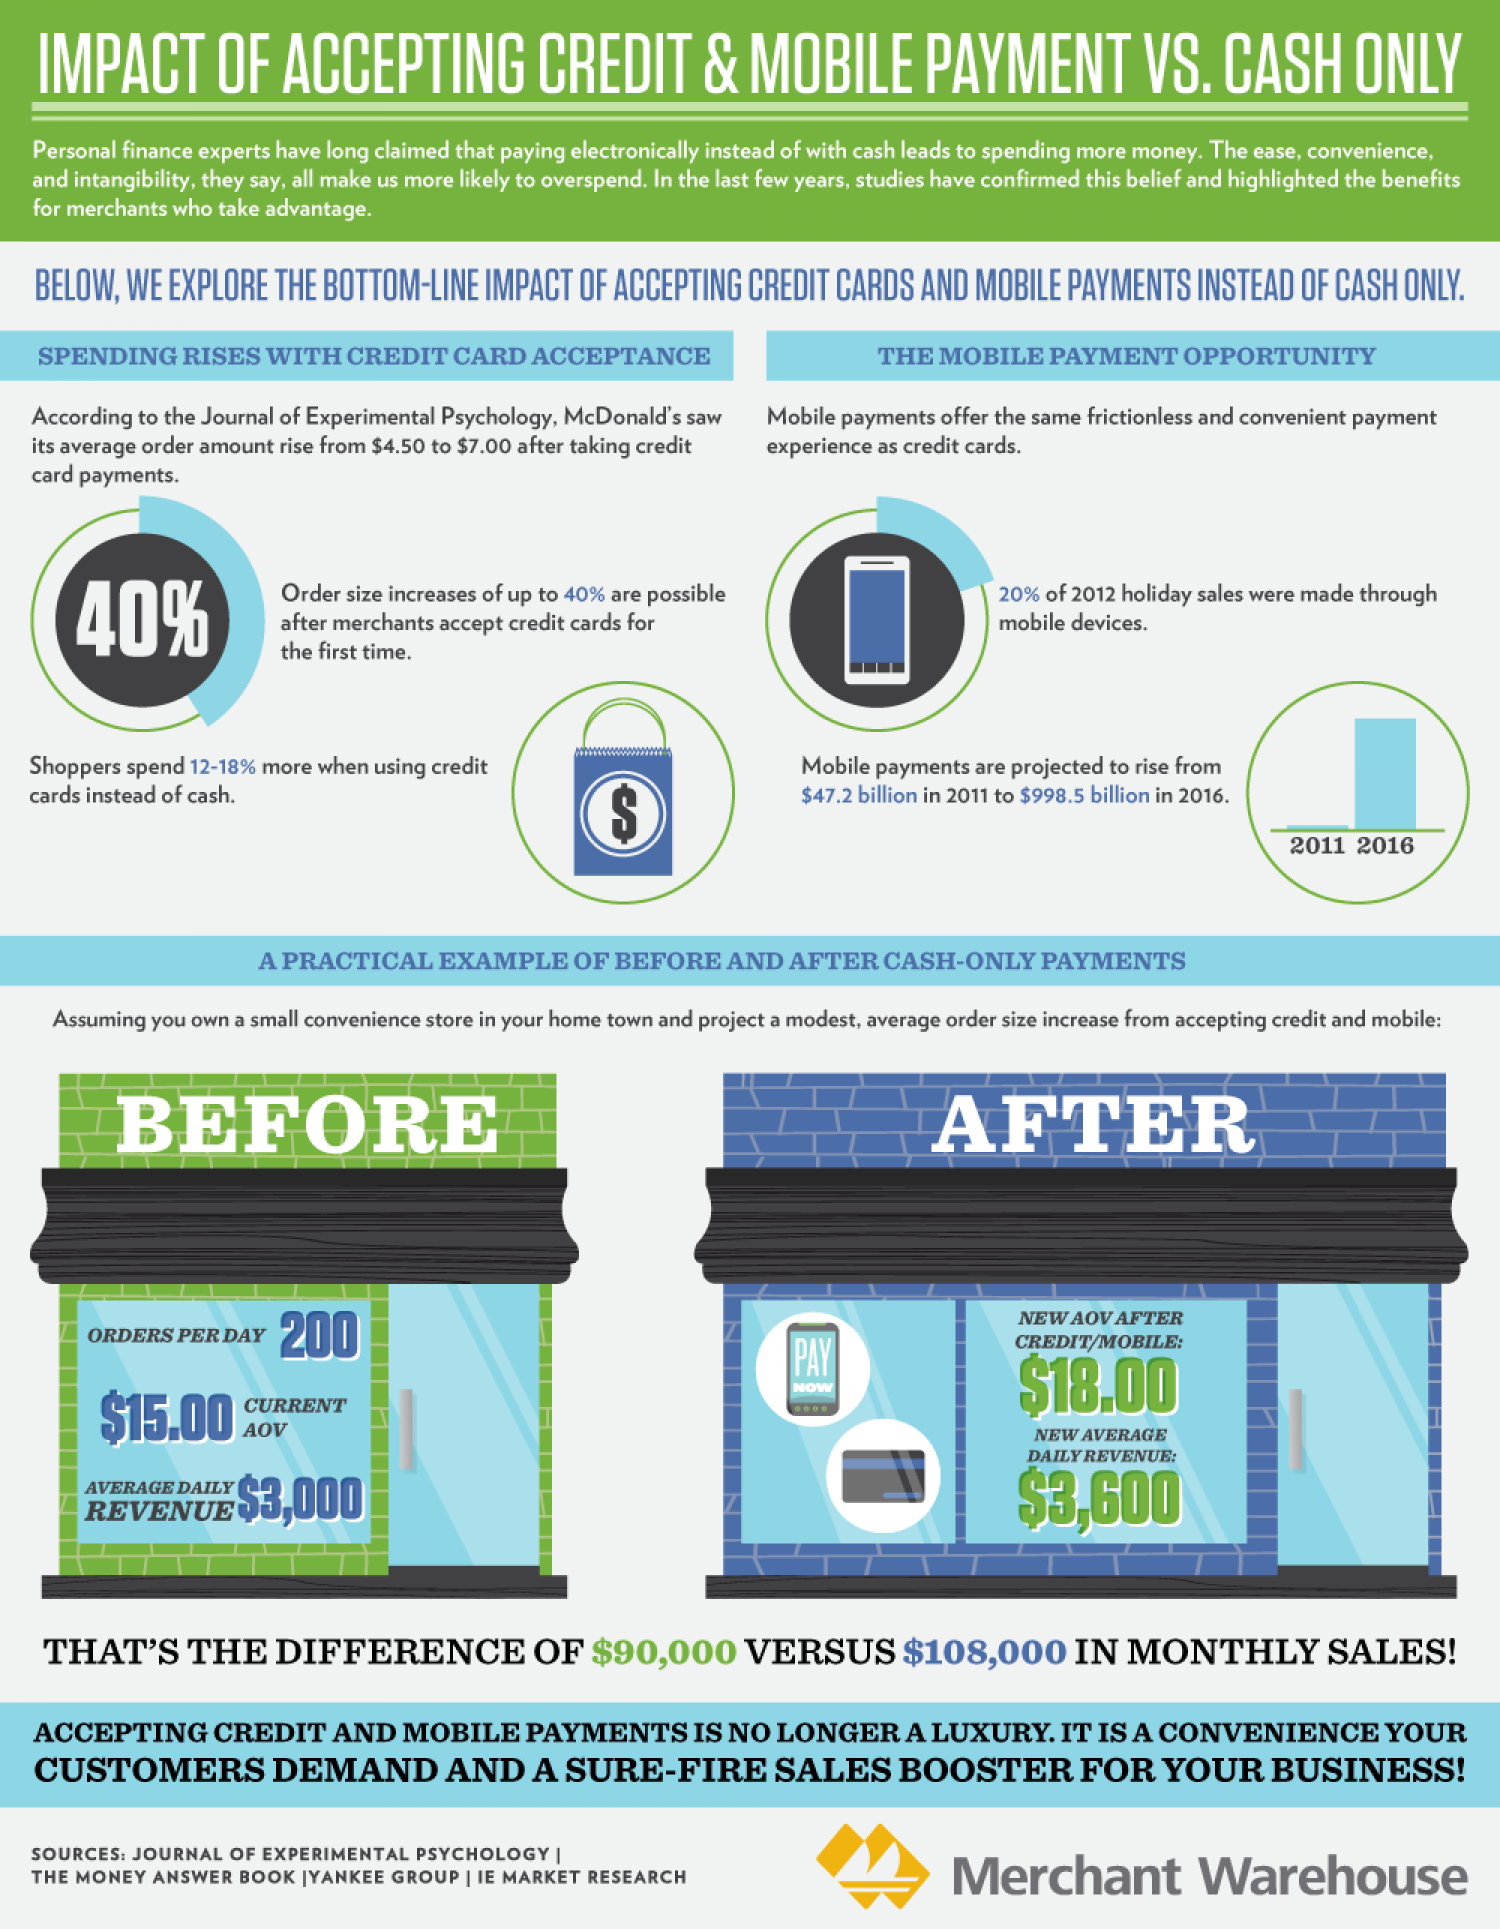 The Impact of Accepting Credit Cards and Mobile Payments versus Cash Only Infographic